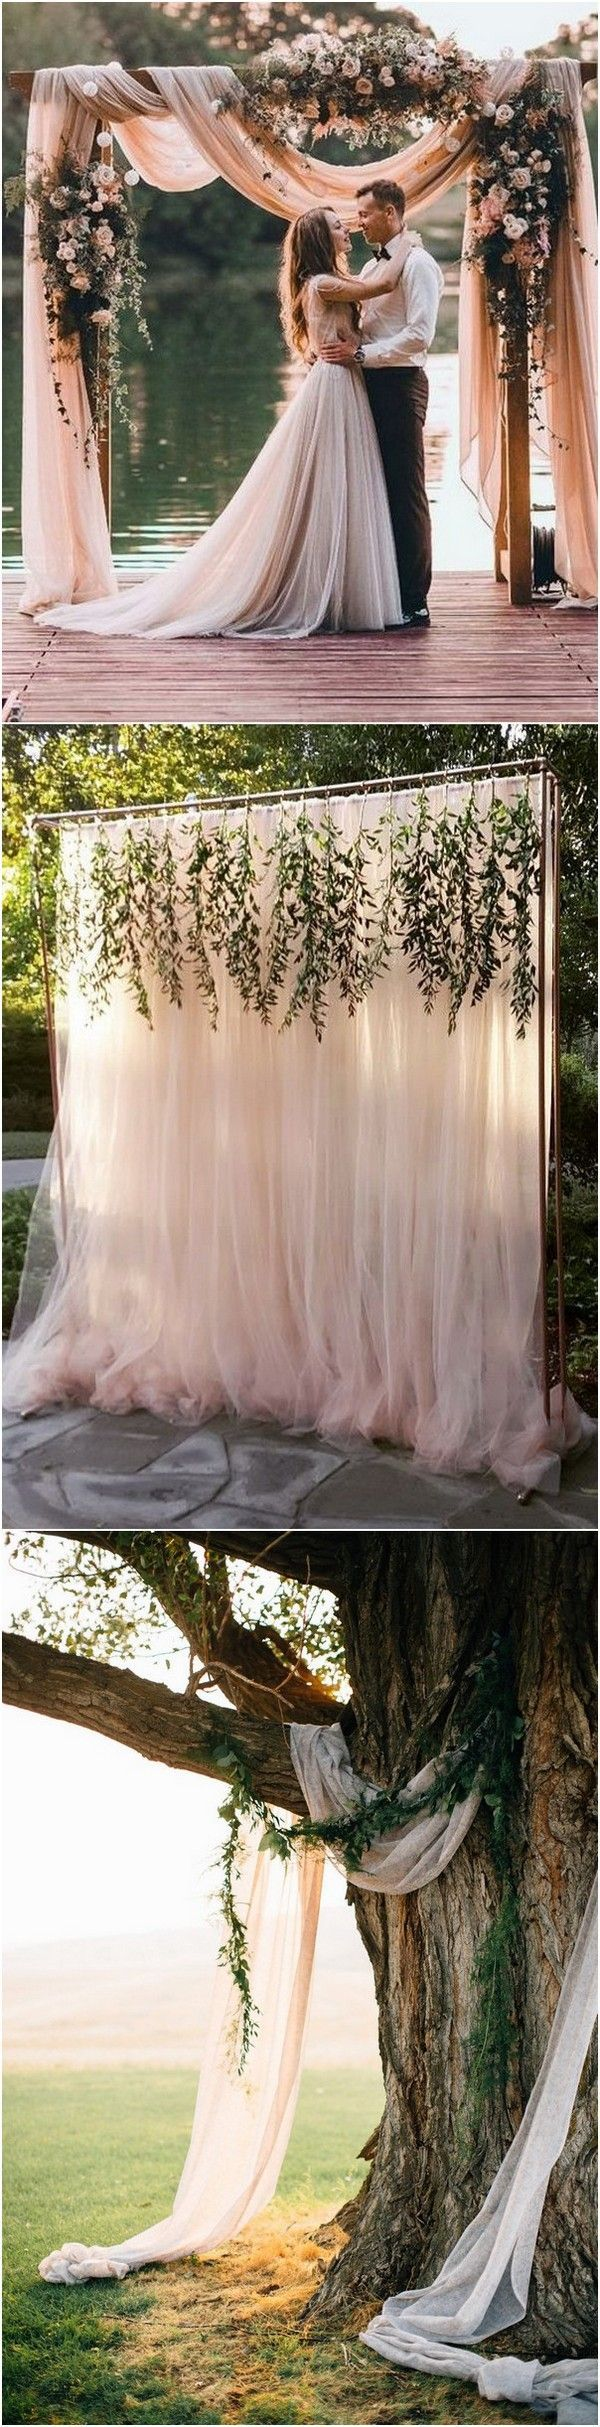 Wedding decorations garden december 2018  best Outfit images on Pinterest  Clothing Fashion street styles